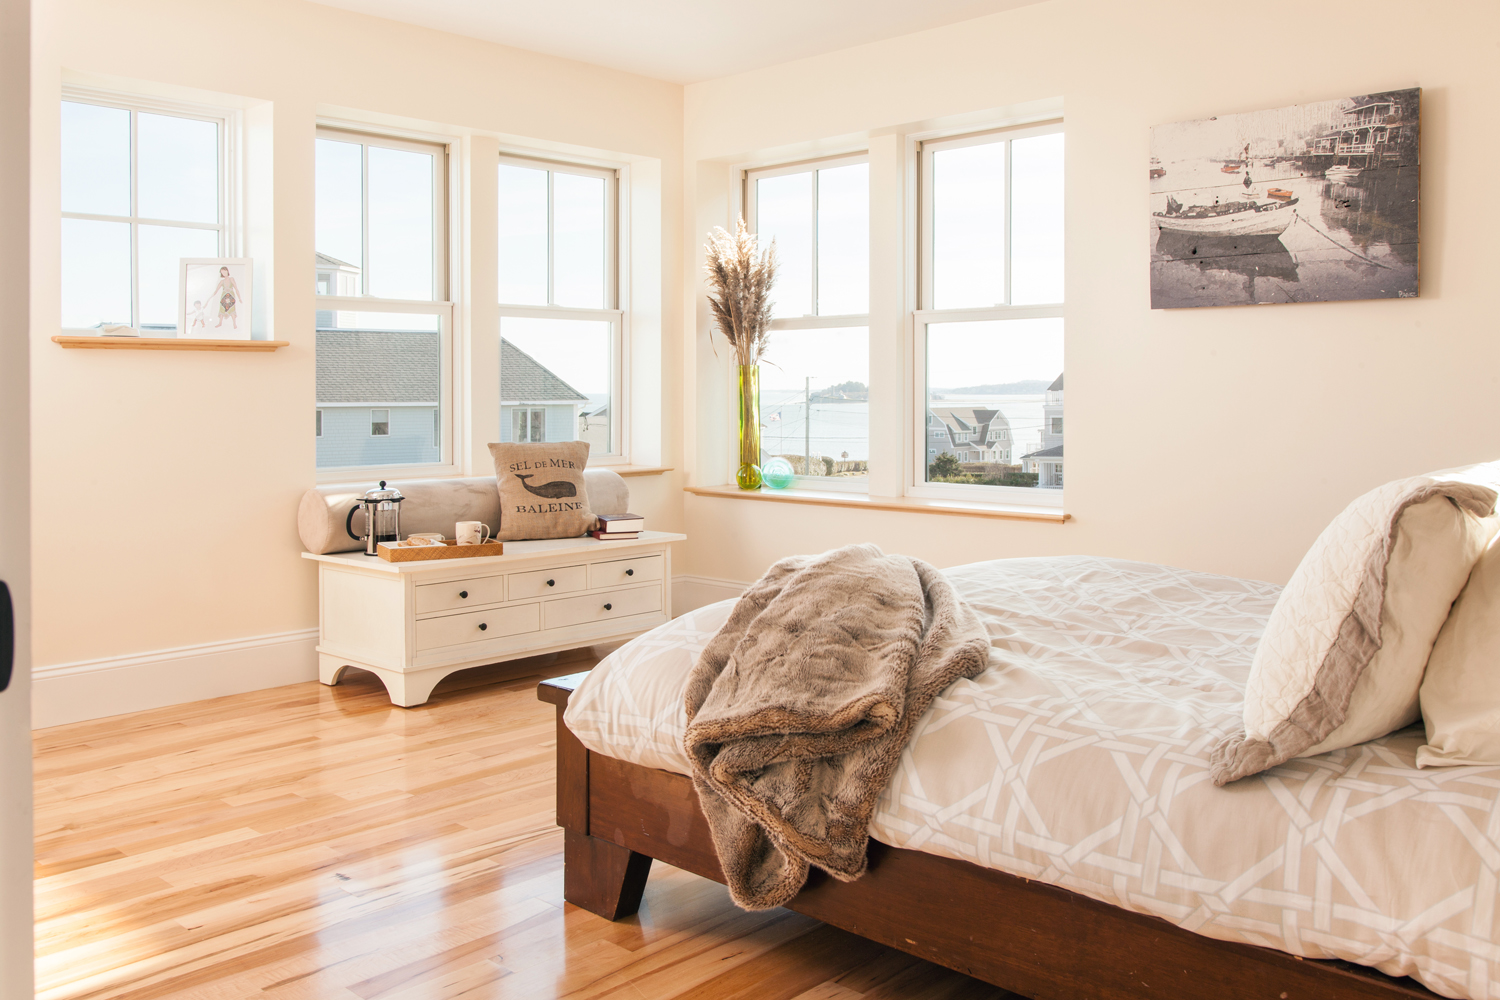 scituate_master bedroom.jpg